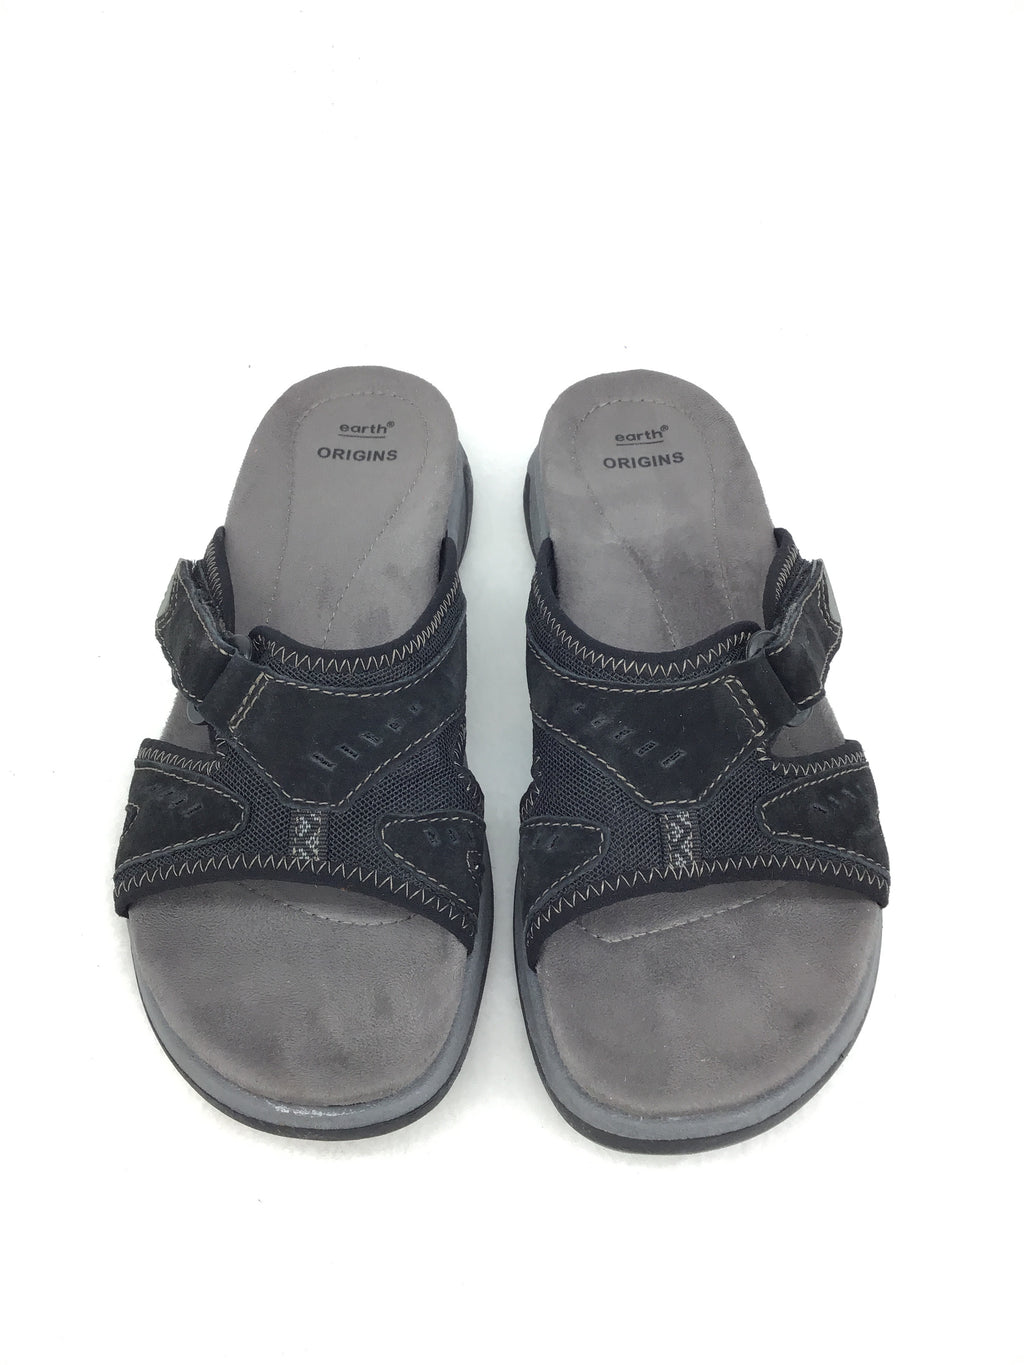 Earth Origins Higgins Henley Sandals Size 8.5M